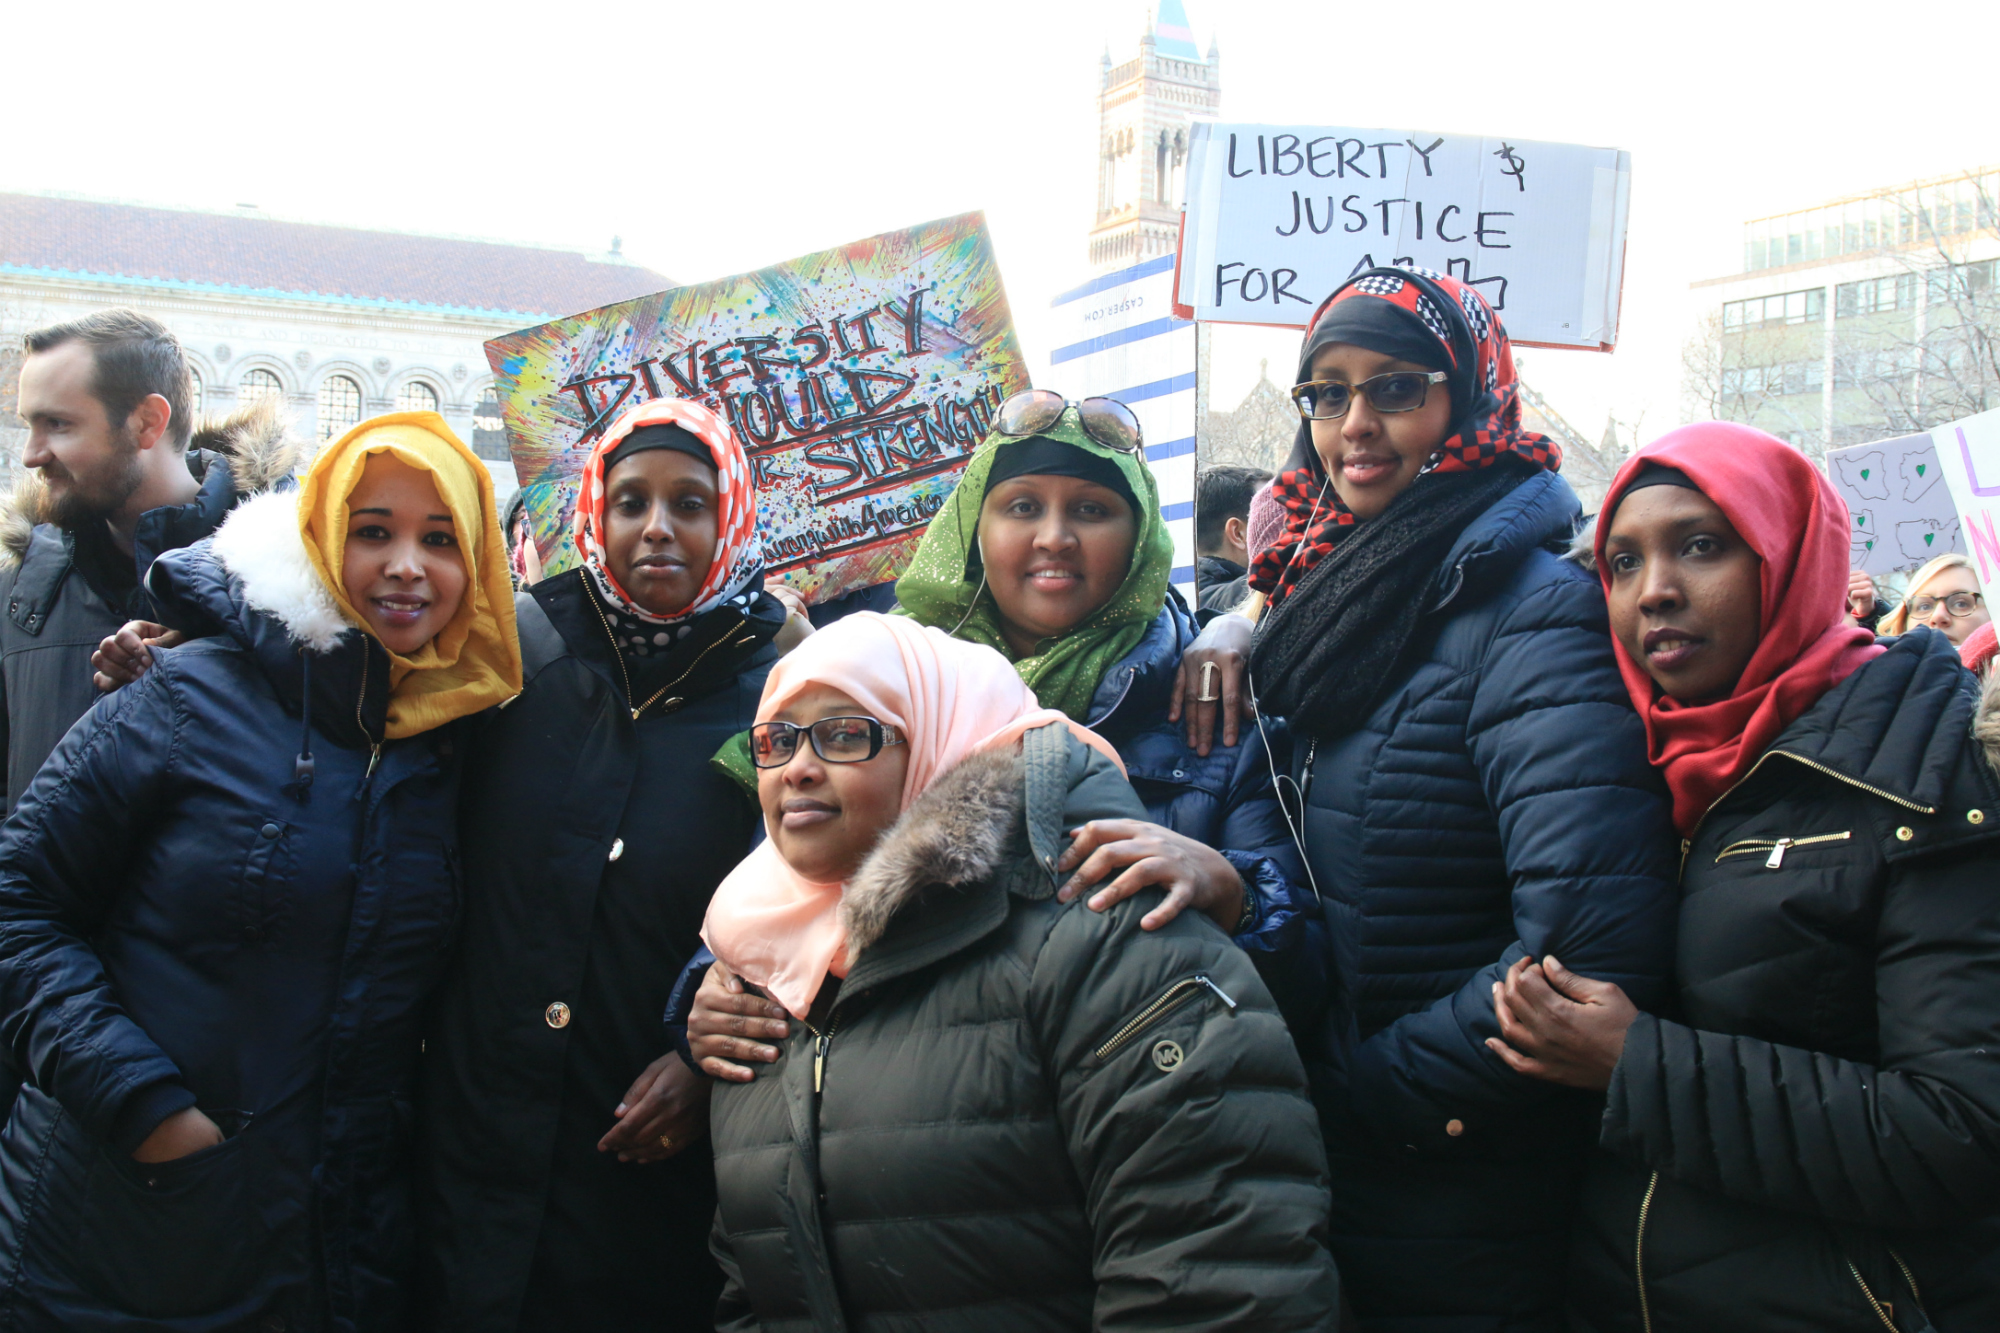 """Somali-immigrant Rukia Tahlil (center) has been living in the United States for 23 years. """"My country was going through a civil war at the time, so we came here for safety. But since Donald Trump was elected and citizens of America turned to hate, I don't feel safe here anymore,"""" she said. With her cousins and friends, she protested against President Donald Trump immigration ban against people from seven majority-Muslim countries, including her own. (Photo by Giulia Afiune/GroundTruth)"""